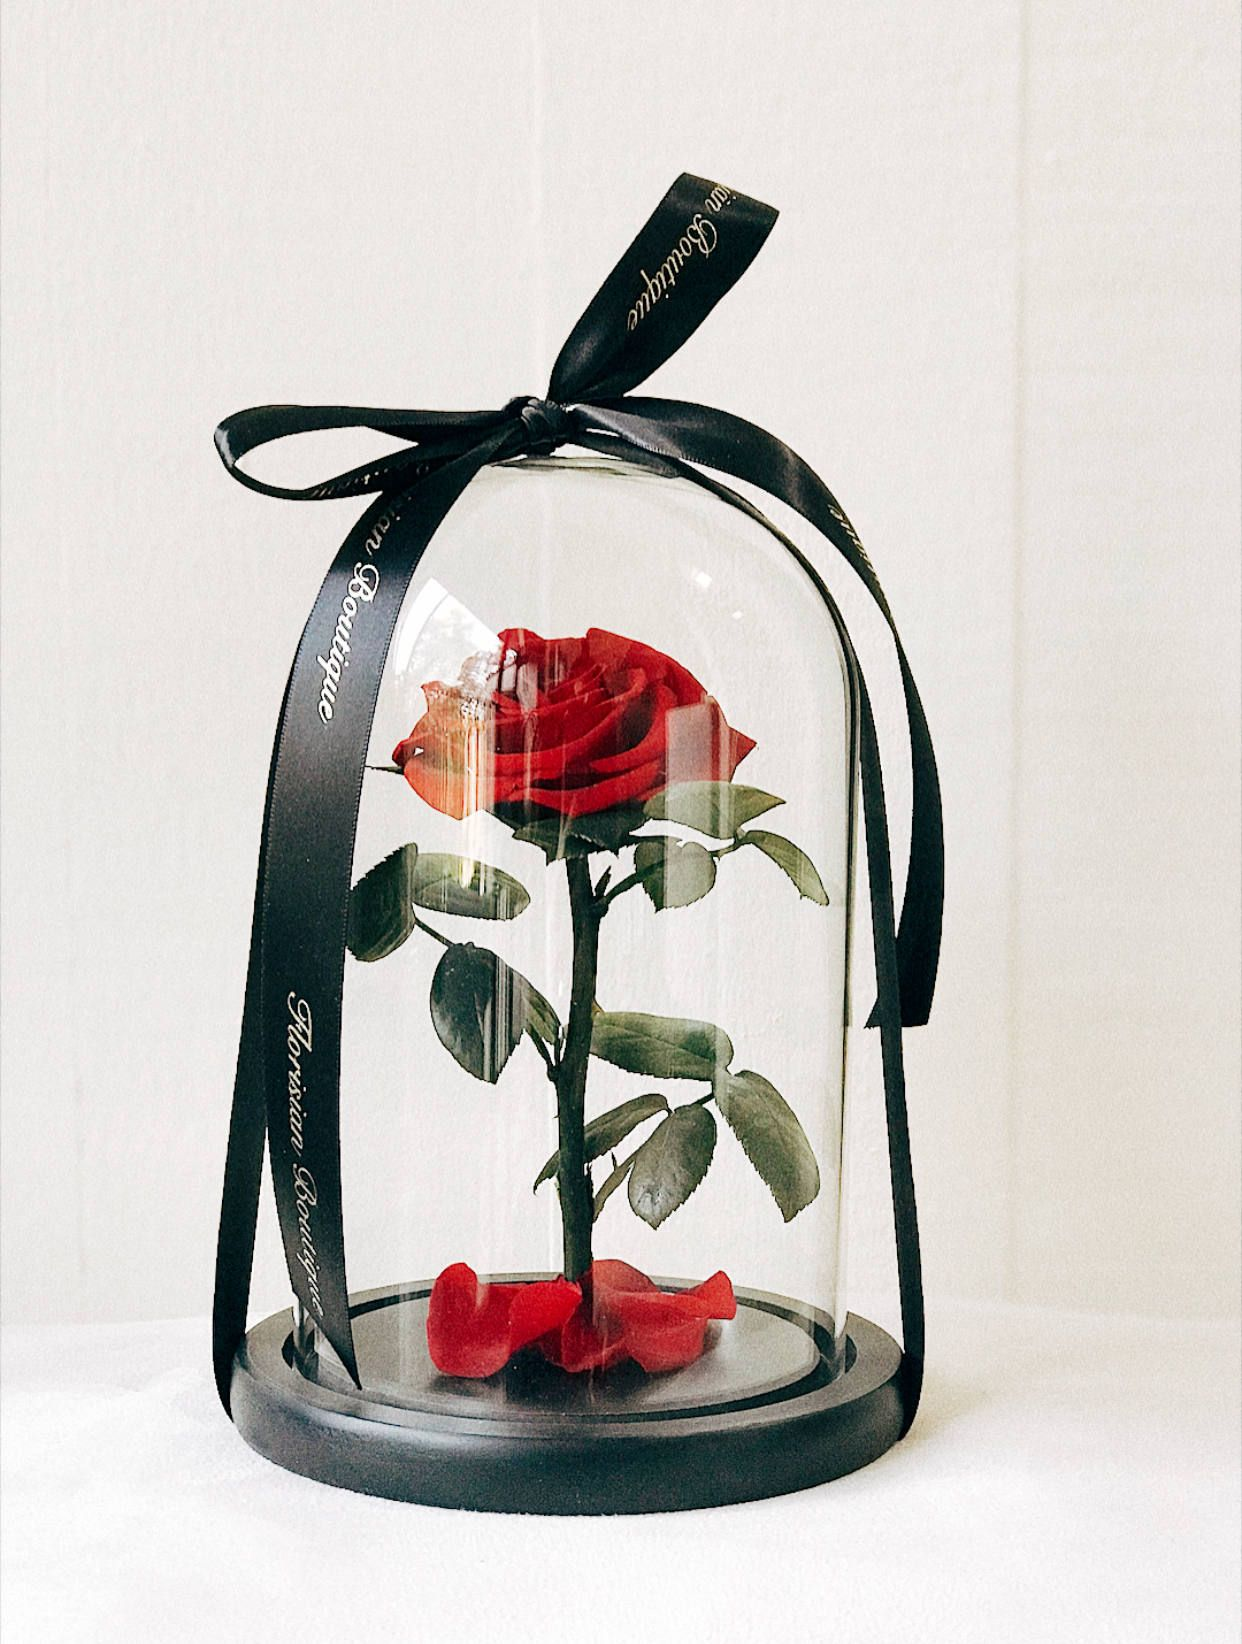 Beauty And The Beast Rose Rose In Glass Dome 100 Real Rose That